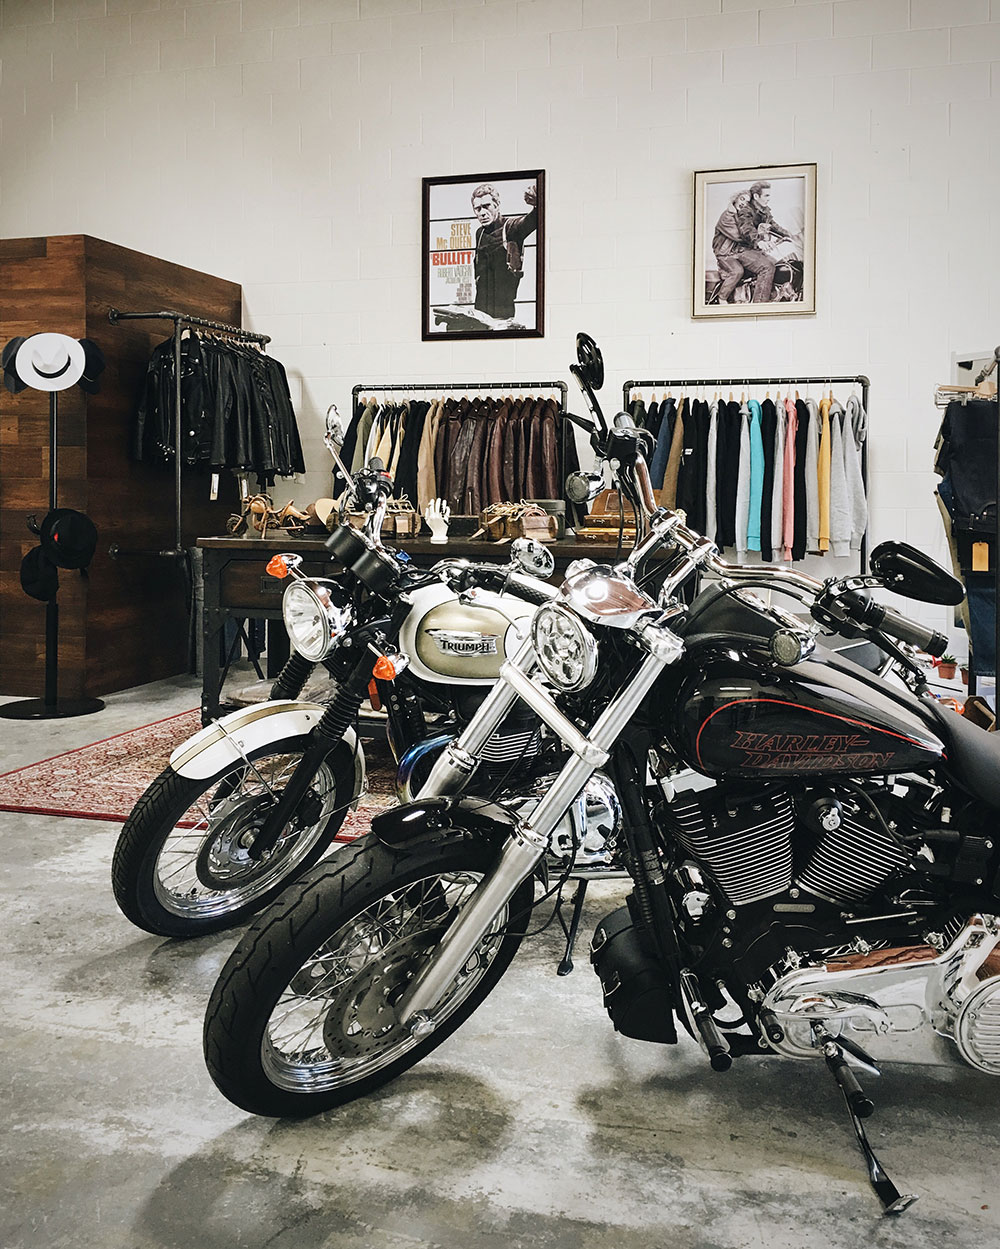 Disney designer opens diy shop and moto lounge the motorcycle hub three months ago chung opened rocket fuel supply co vancouvers newest do it yourself motorcycle shop solutioingenieria Image collections